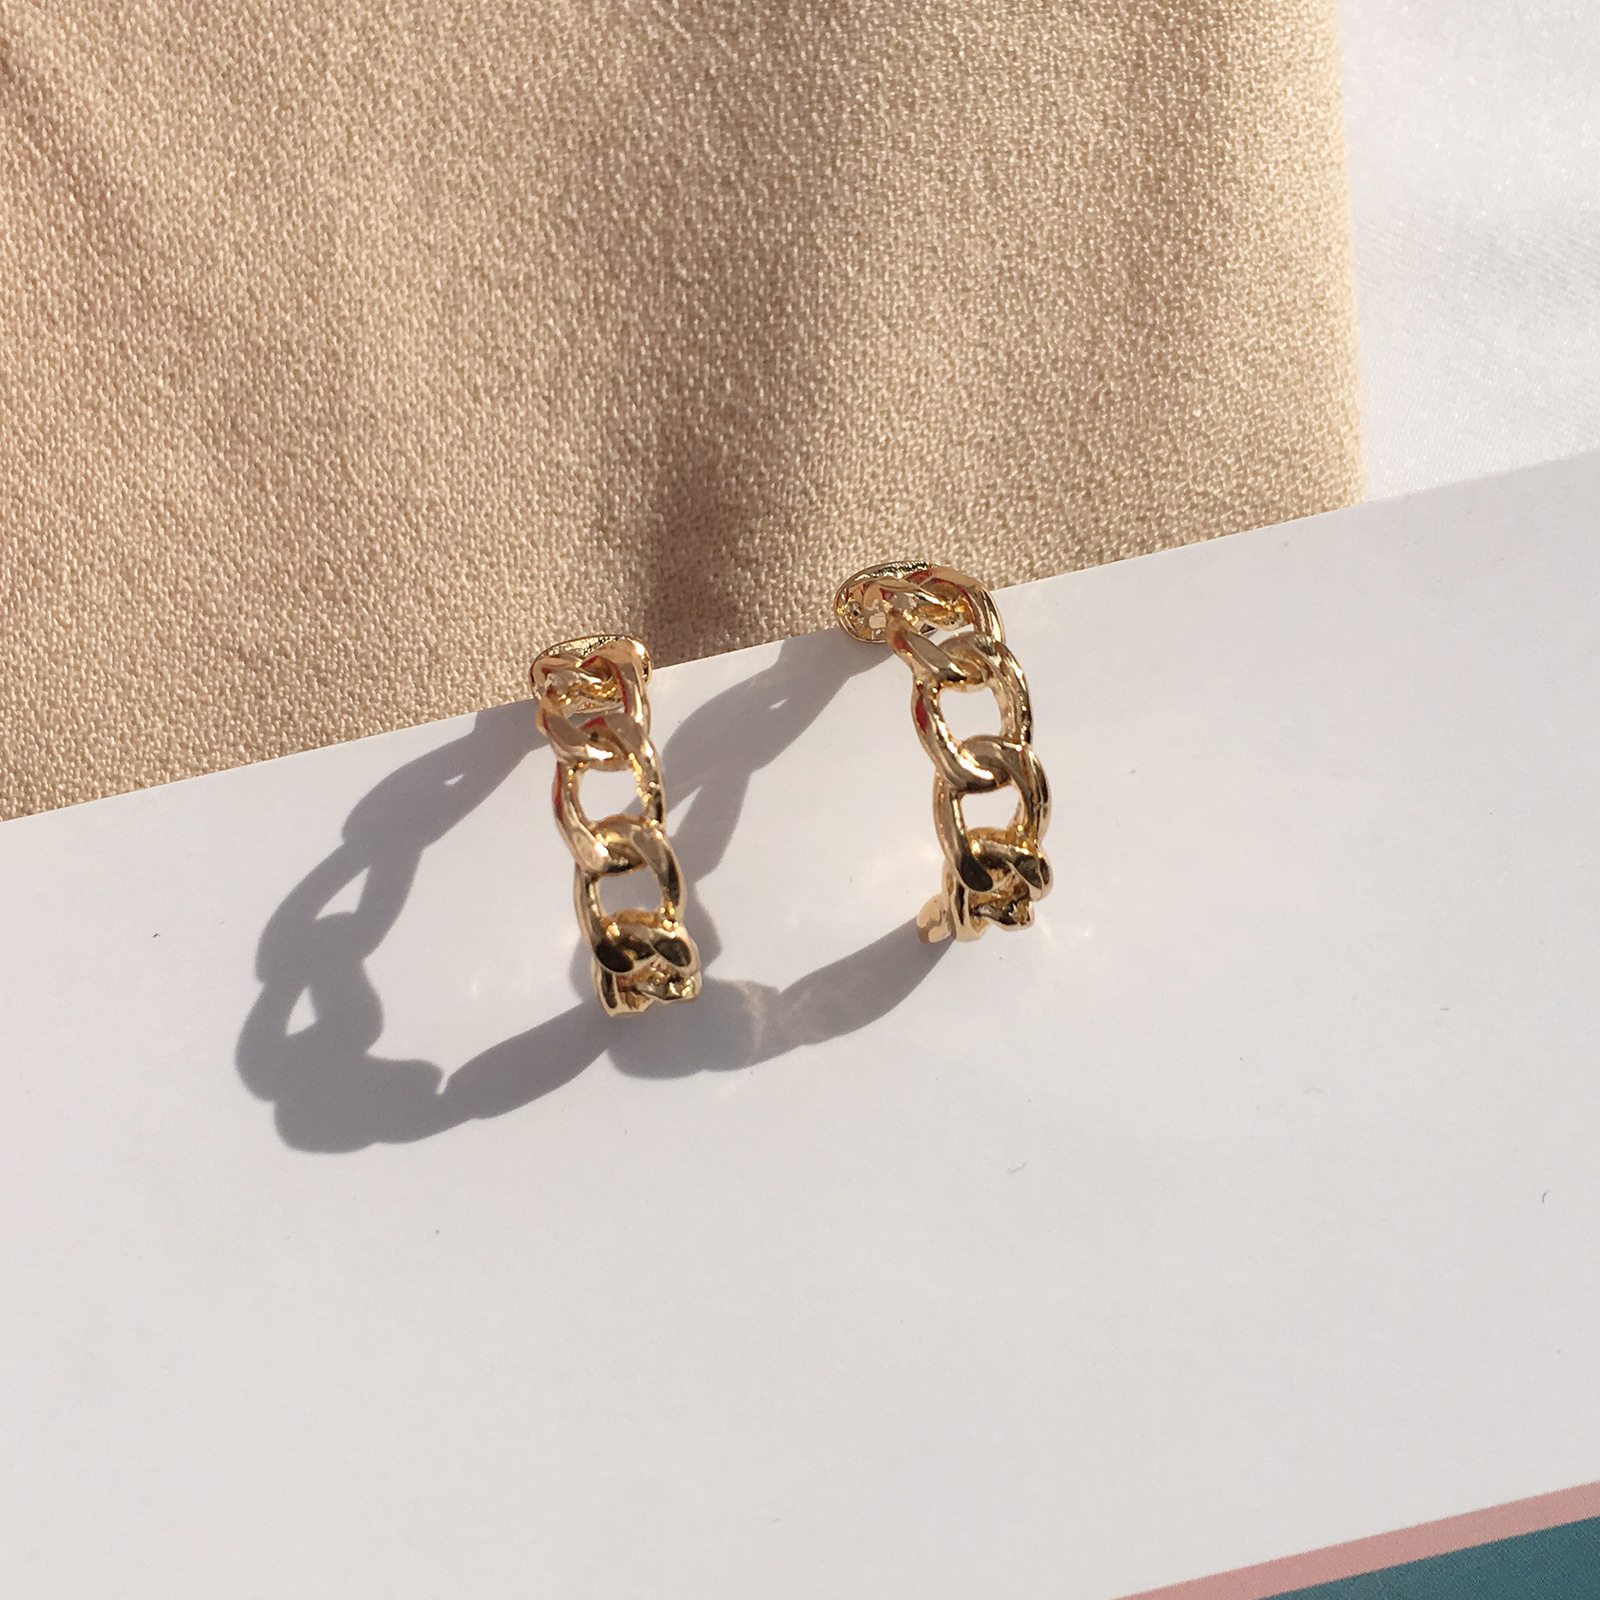 2019 Korean Gold Color Chain Hoop Earrings For Women Fashion Popular Metal Chain C Type Simple Earrings Statement Jewelry Gifts